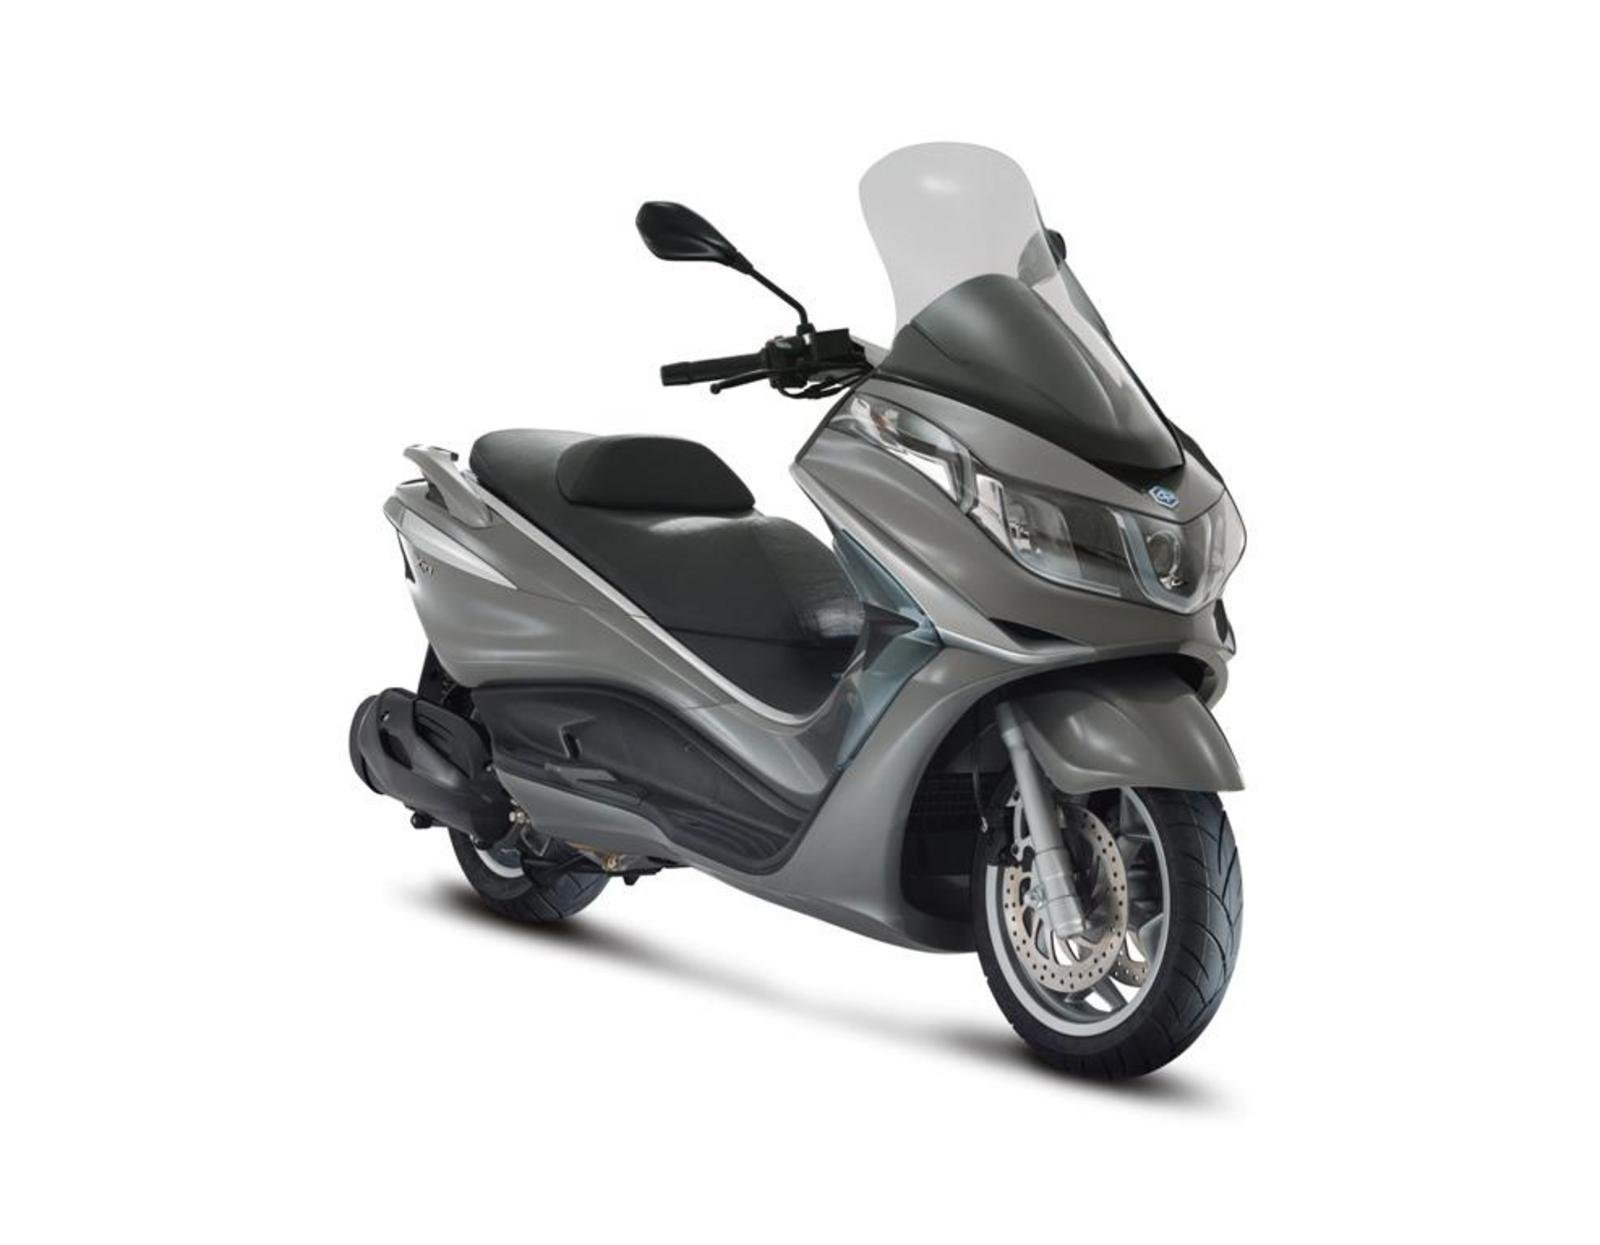 2013 Piaggio X10 350 Review Top Speed - Ampelschirm 350 X 350